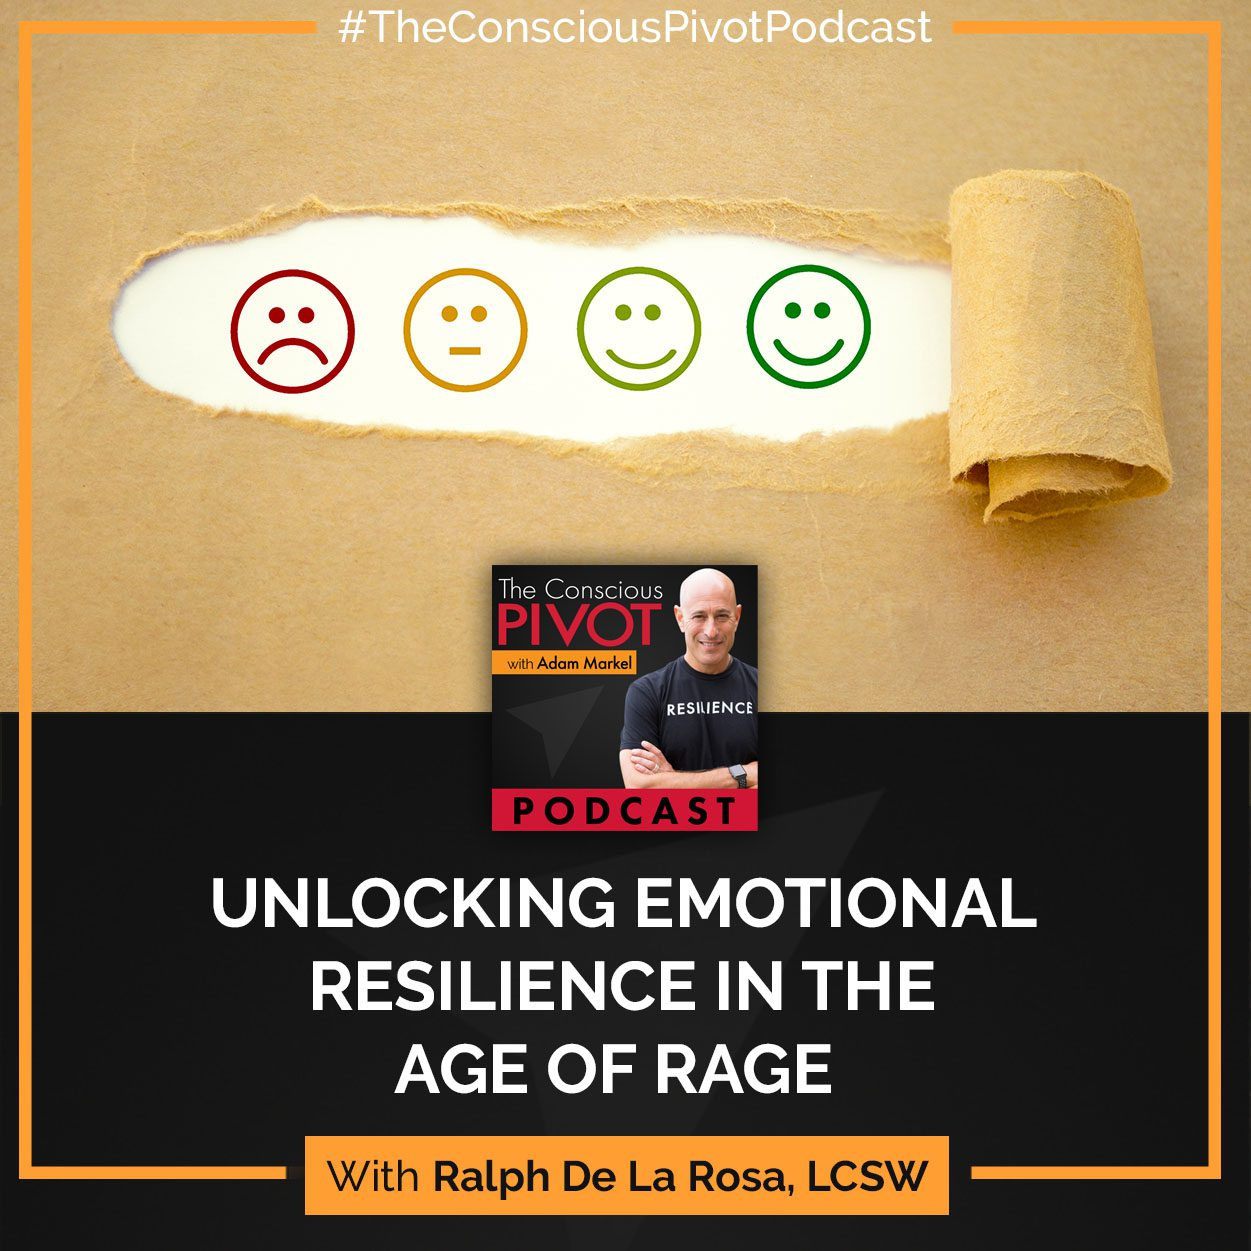 Unlocking Emotional Resilience In The Age Of Rage With Ralph De La Rosa, LCSW